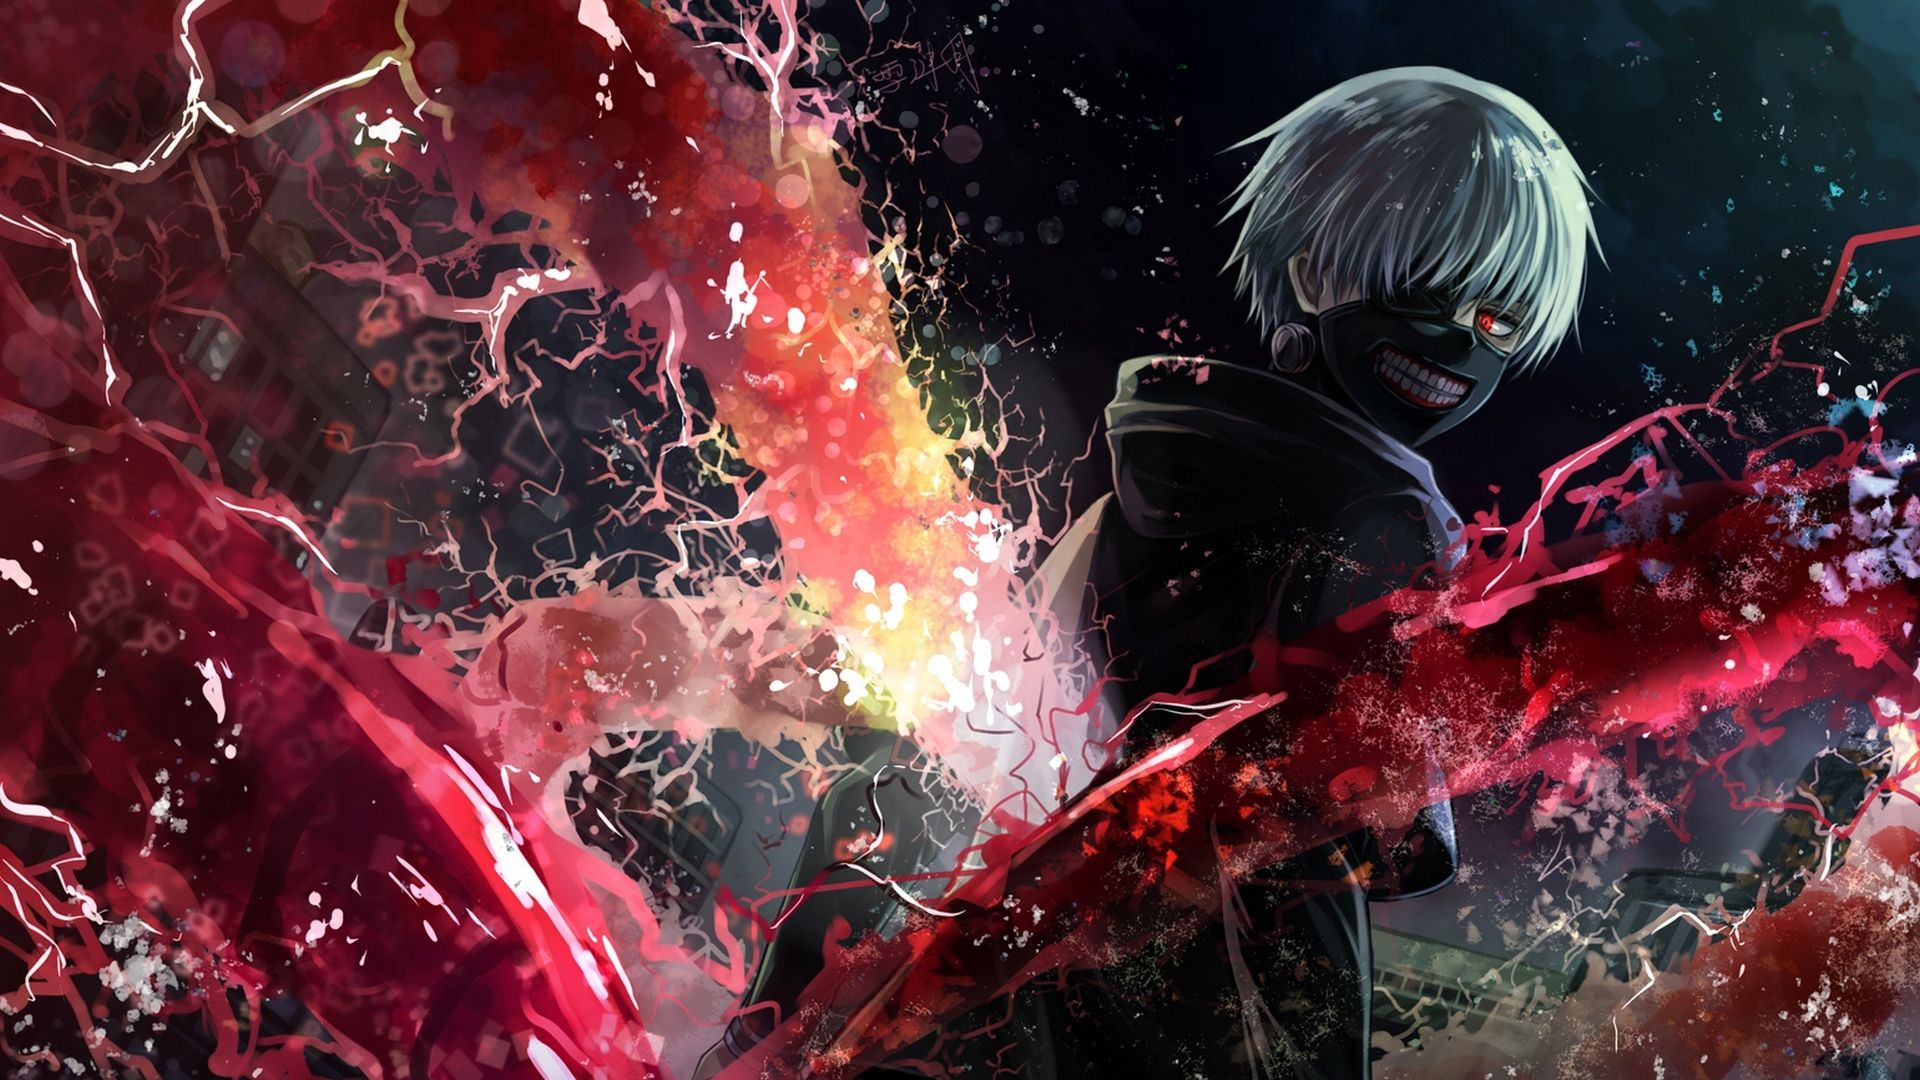 1920x1080 anime wallpapers 1920x1080 Group with 53 items